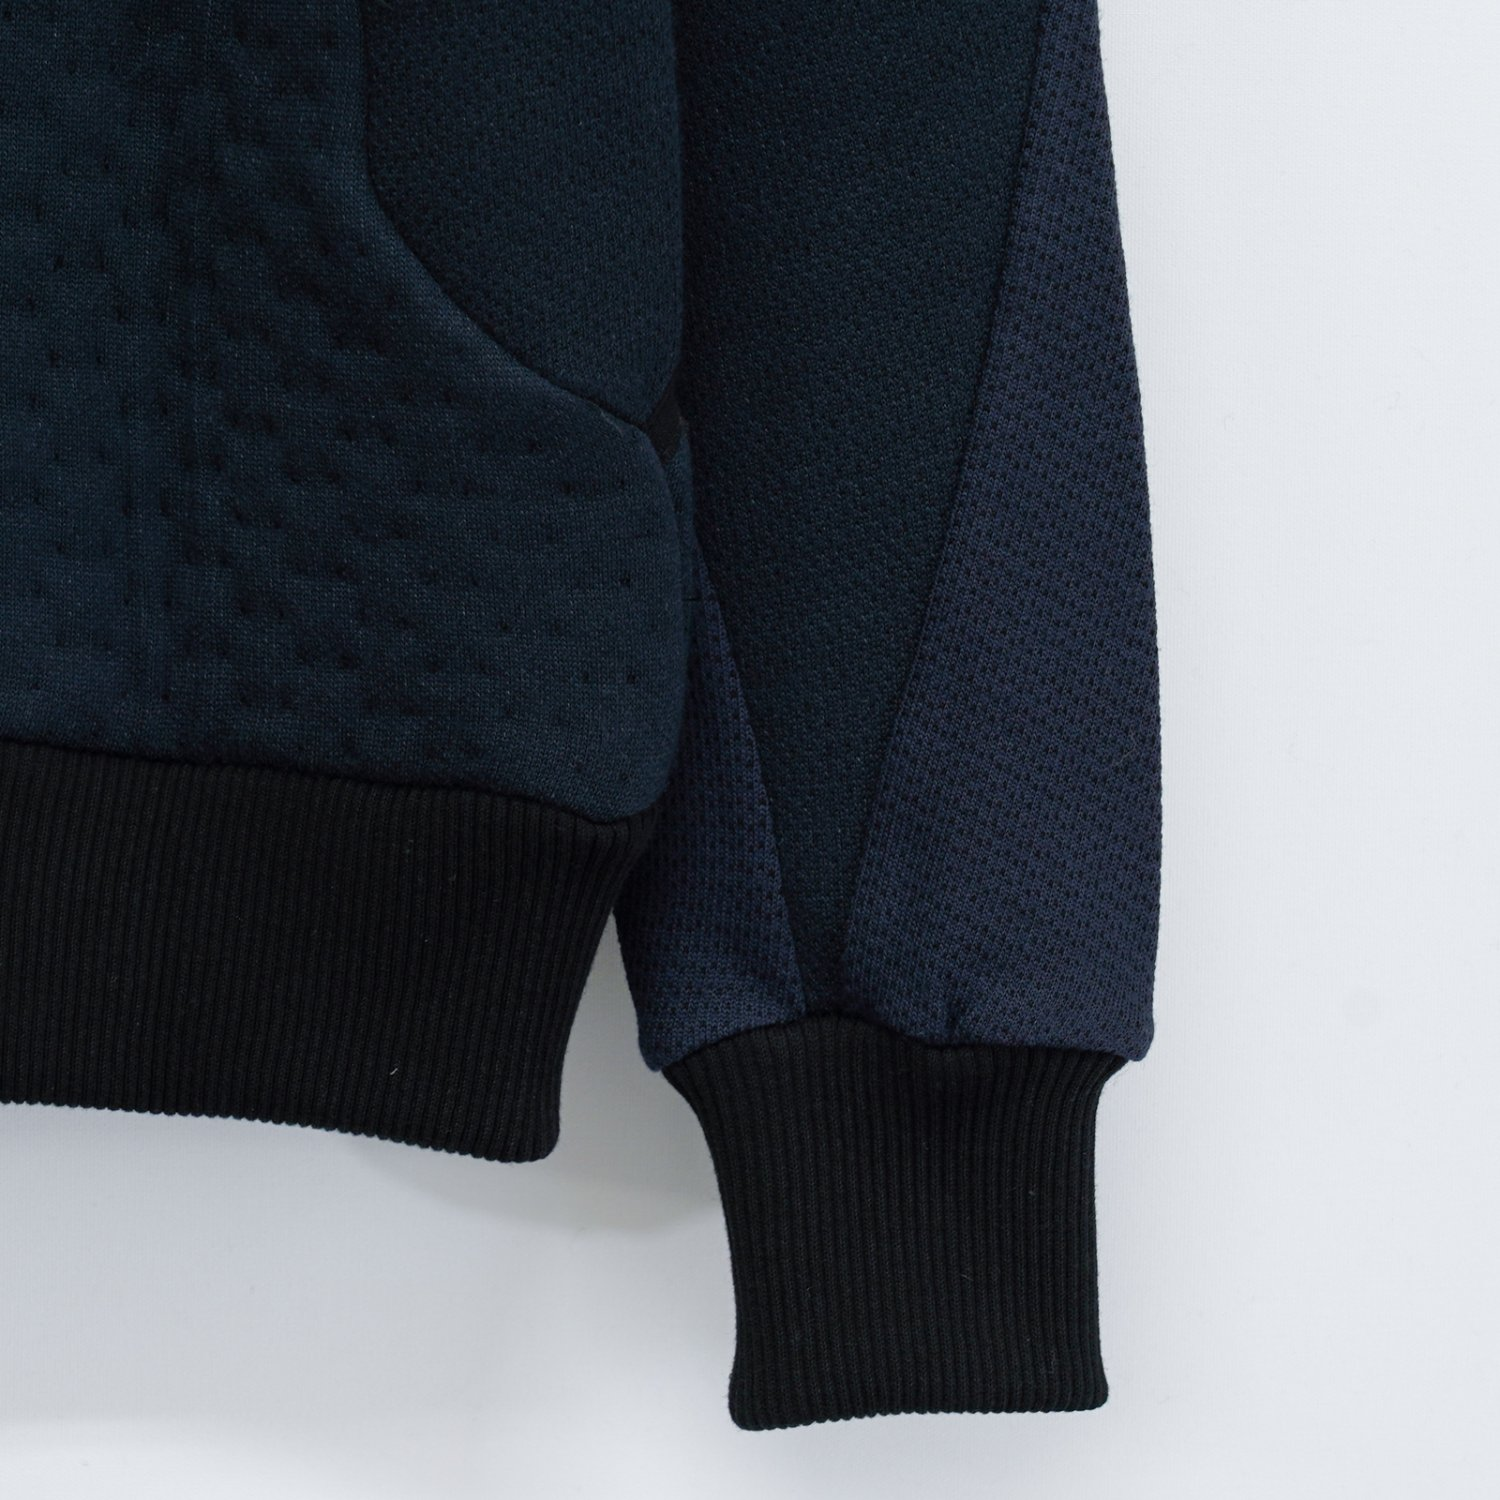 BYBORRE * WOOL WM SWEATER WOOL-520 * Deep Blue